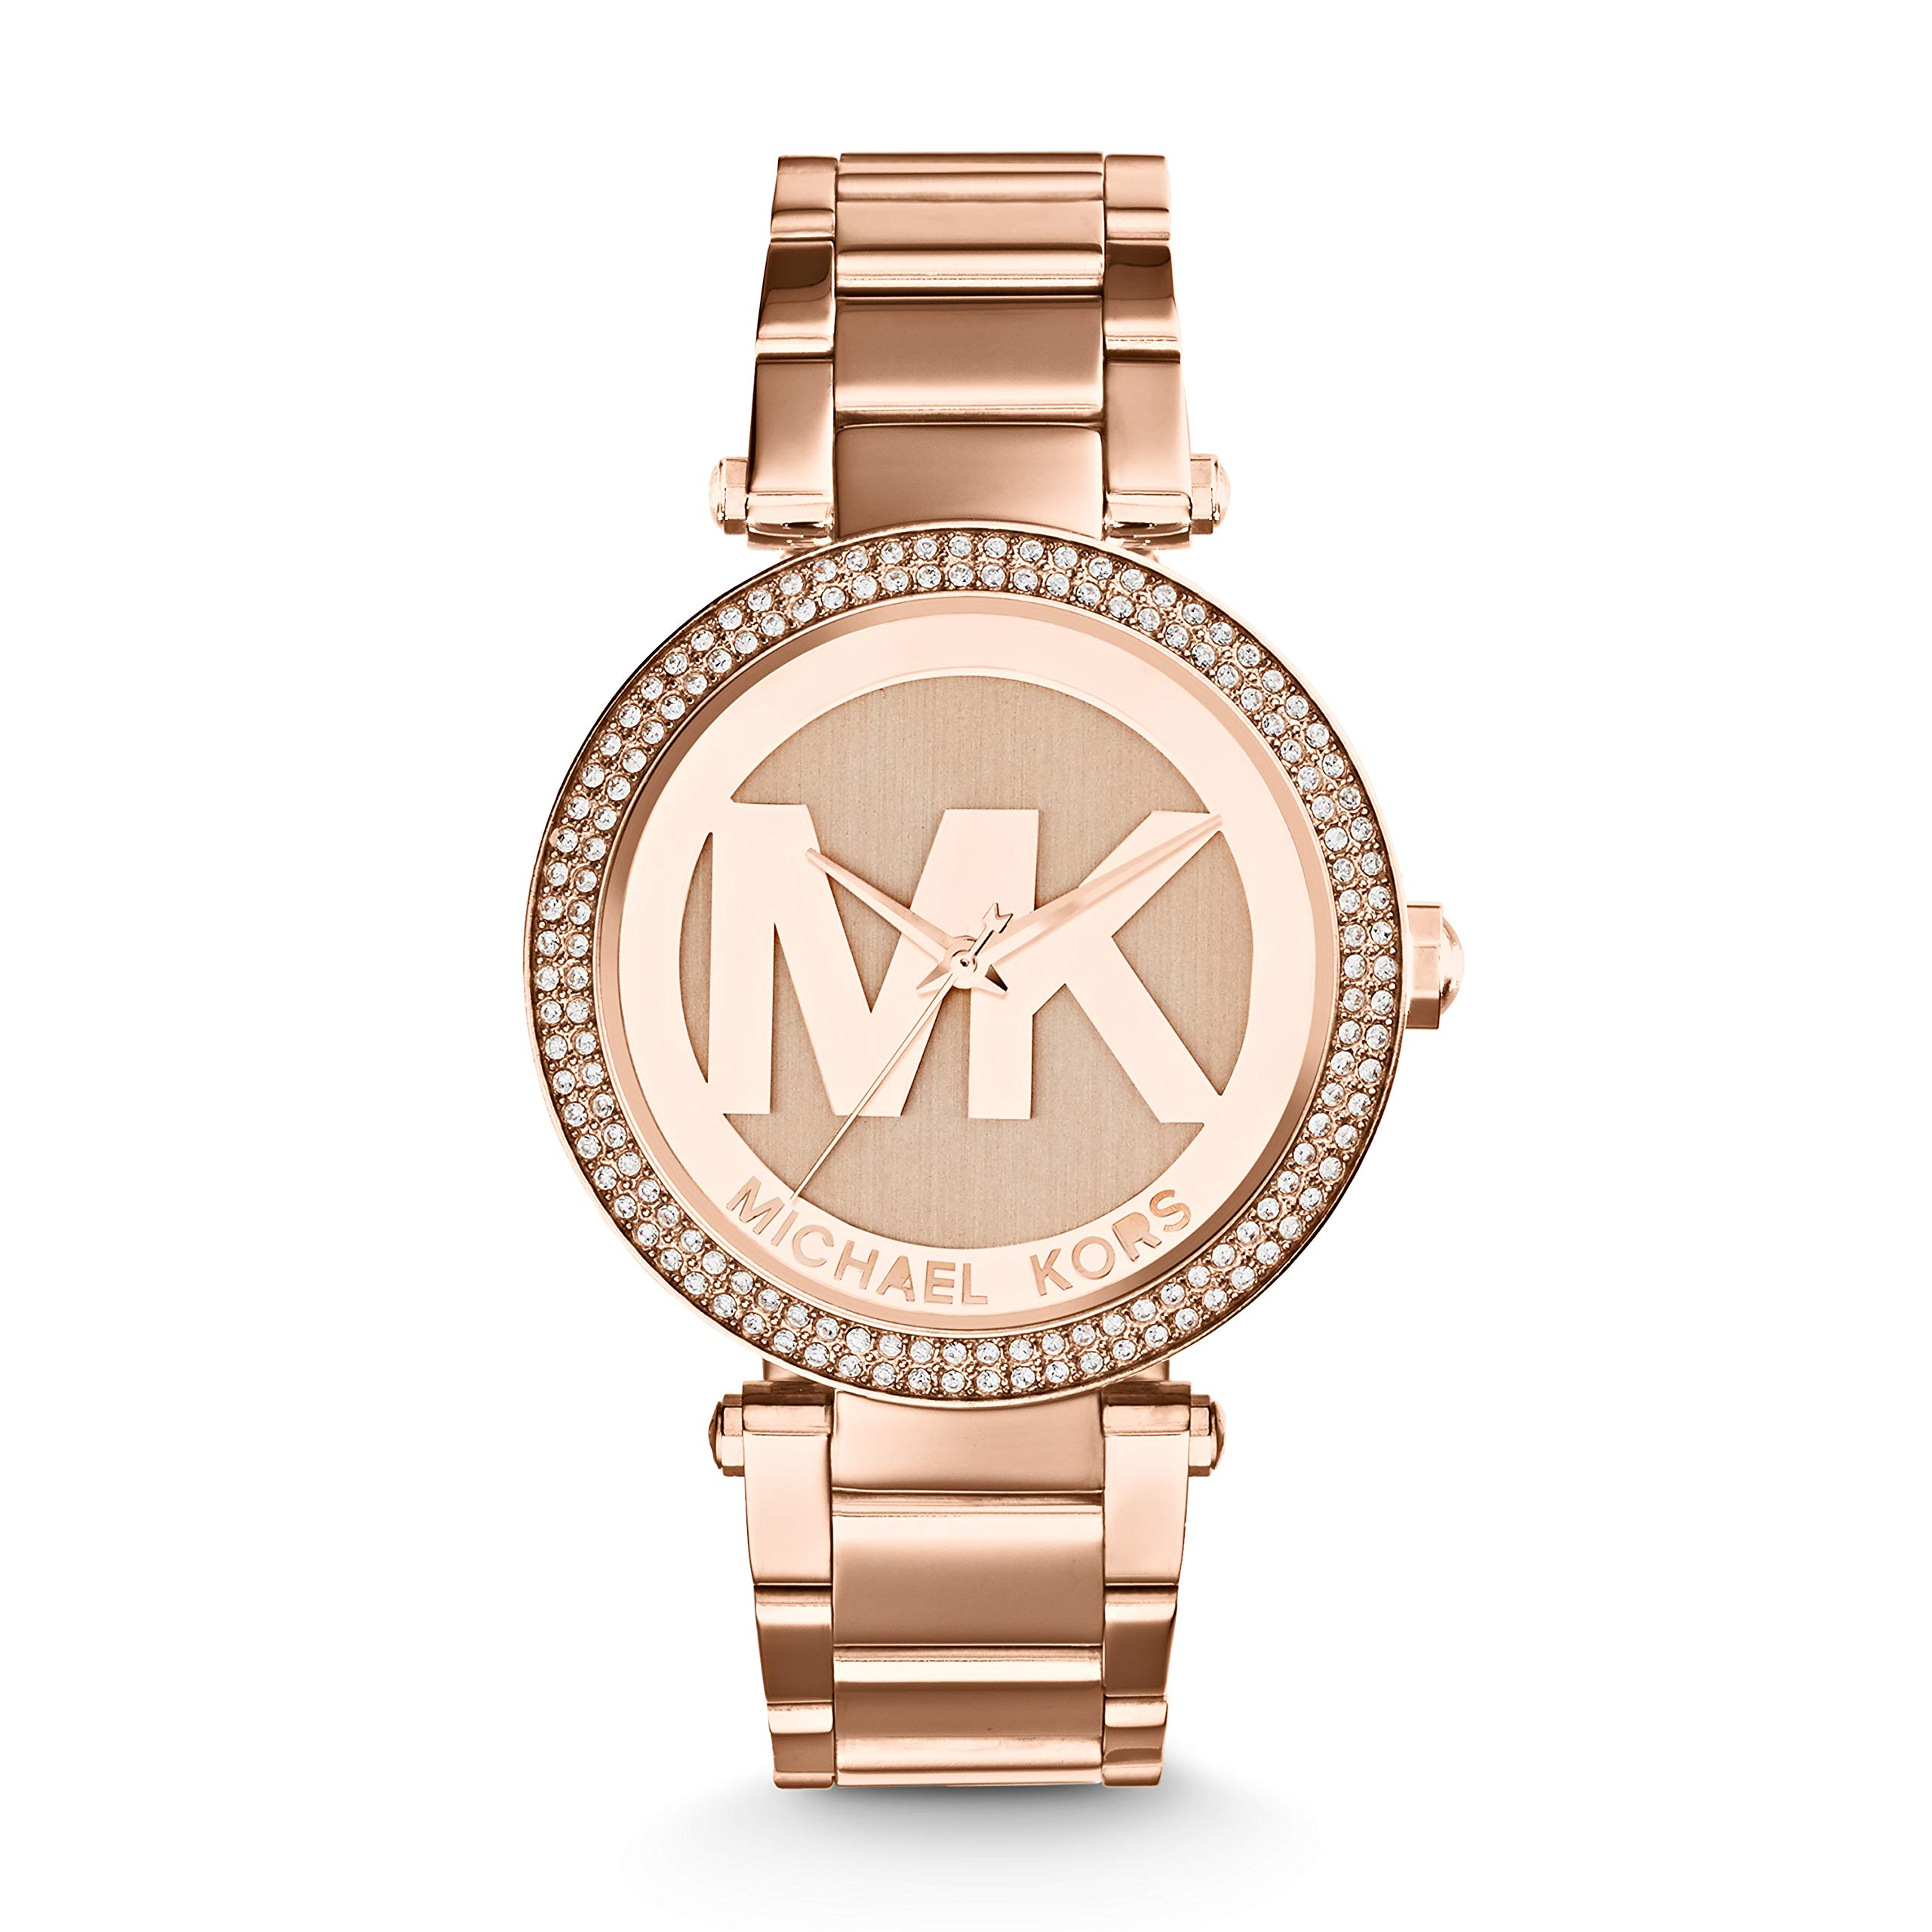 Michael Kors Analog Rose Dial Women's Watch - MK5865